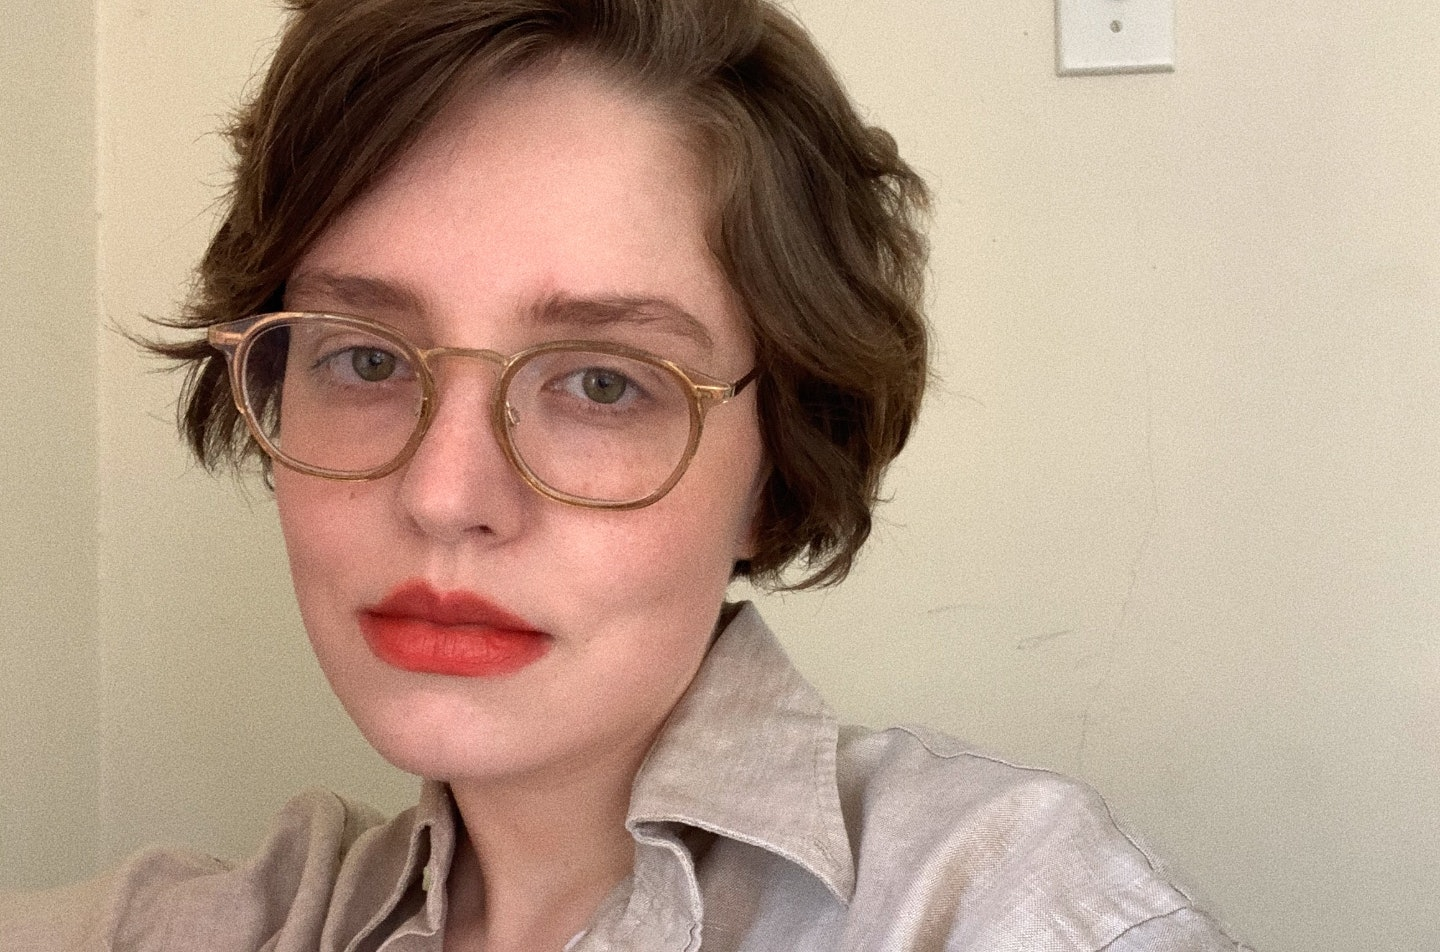 This Dry Shampoo Styling Trick Makes Growing Out My Pixie Cut Less Awkward